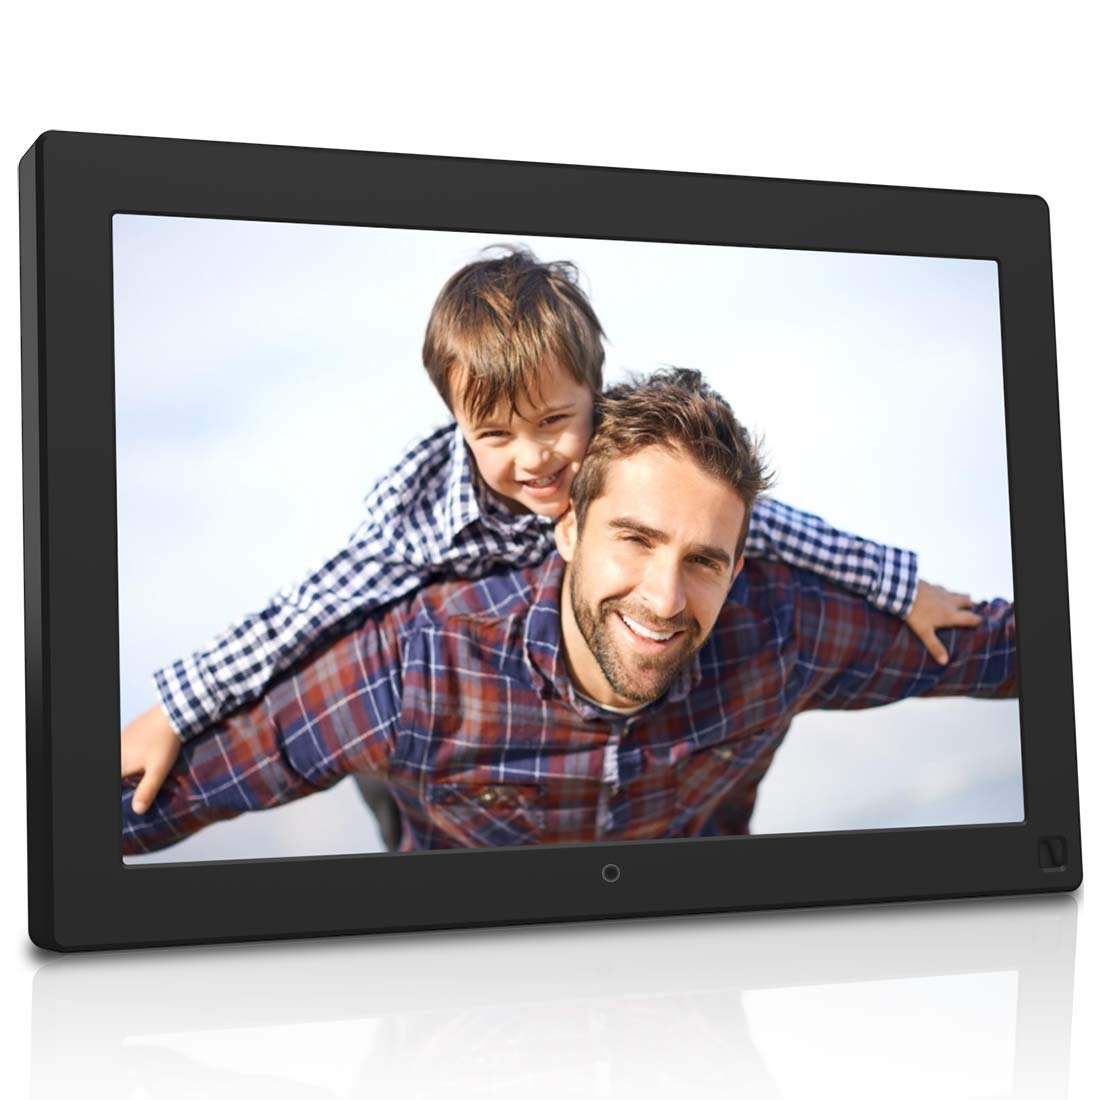 BSIMB 10.1 Inch Digital Photo Frame Digital Picture Frame 1280x800 Built-in 8GB Memory IPS Screen Electronic Photo Frame with Motion Sensor/Auto Rotate/Music&Video Playback/Remote Control M10 by Bsimb